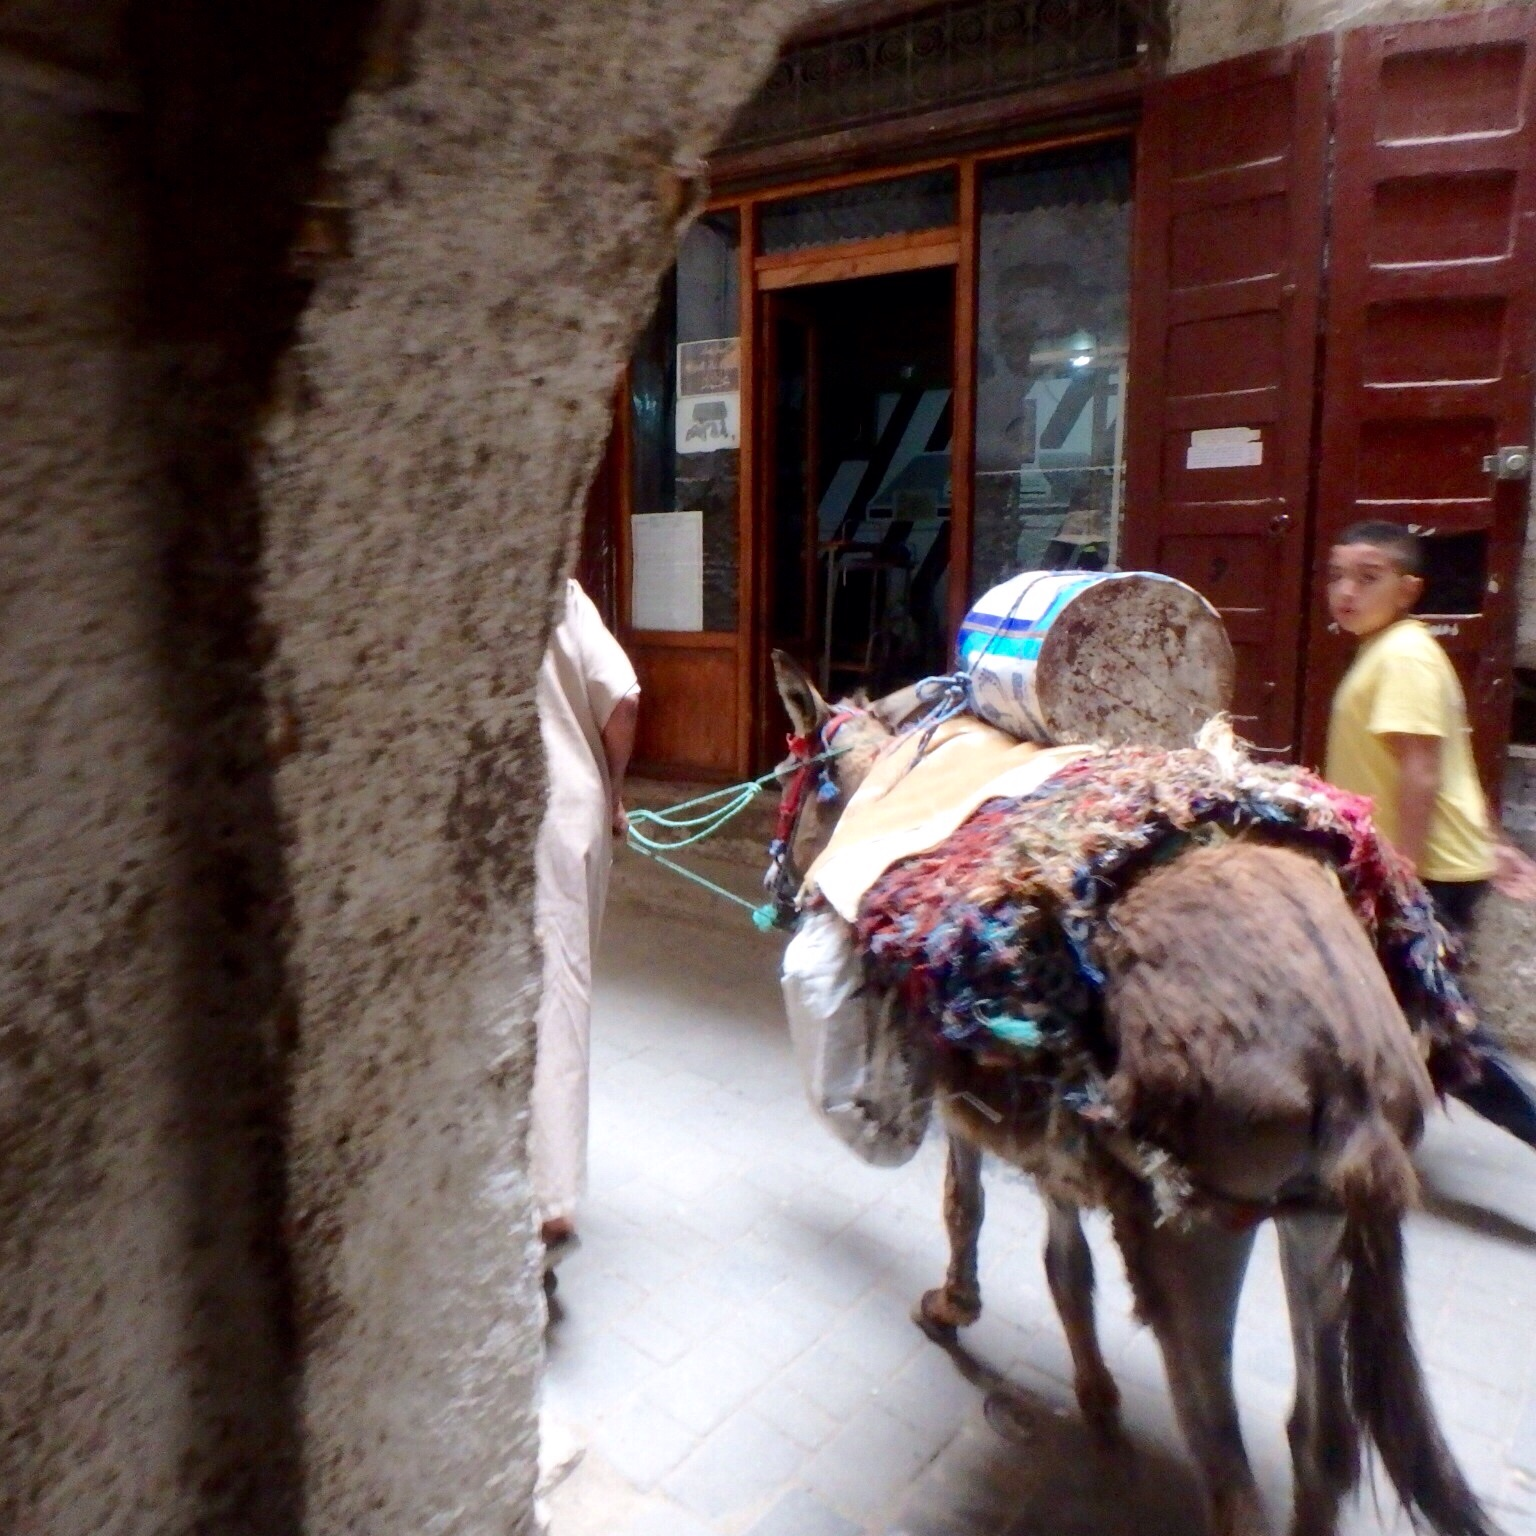 Donkeys, mules and handcarts are the main means of transportation in the medina.